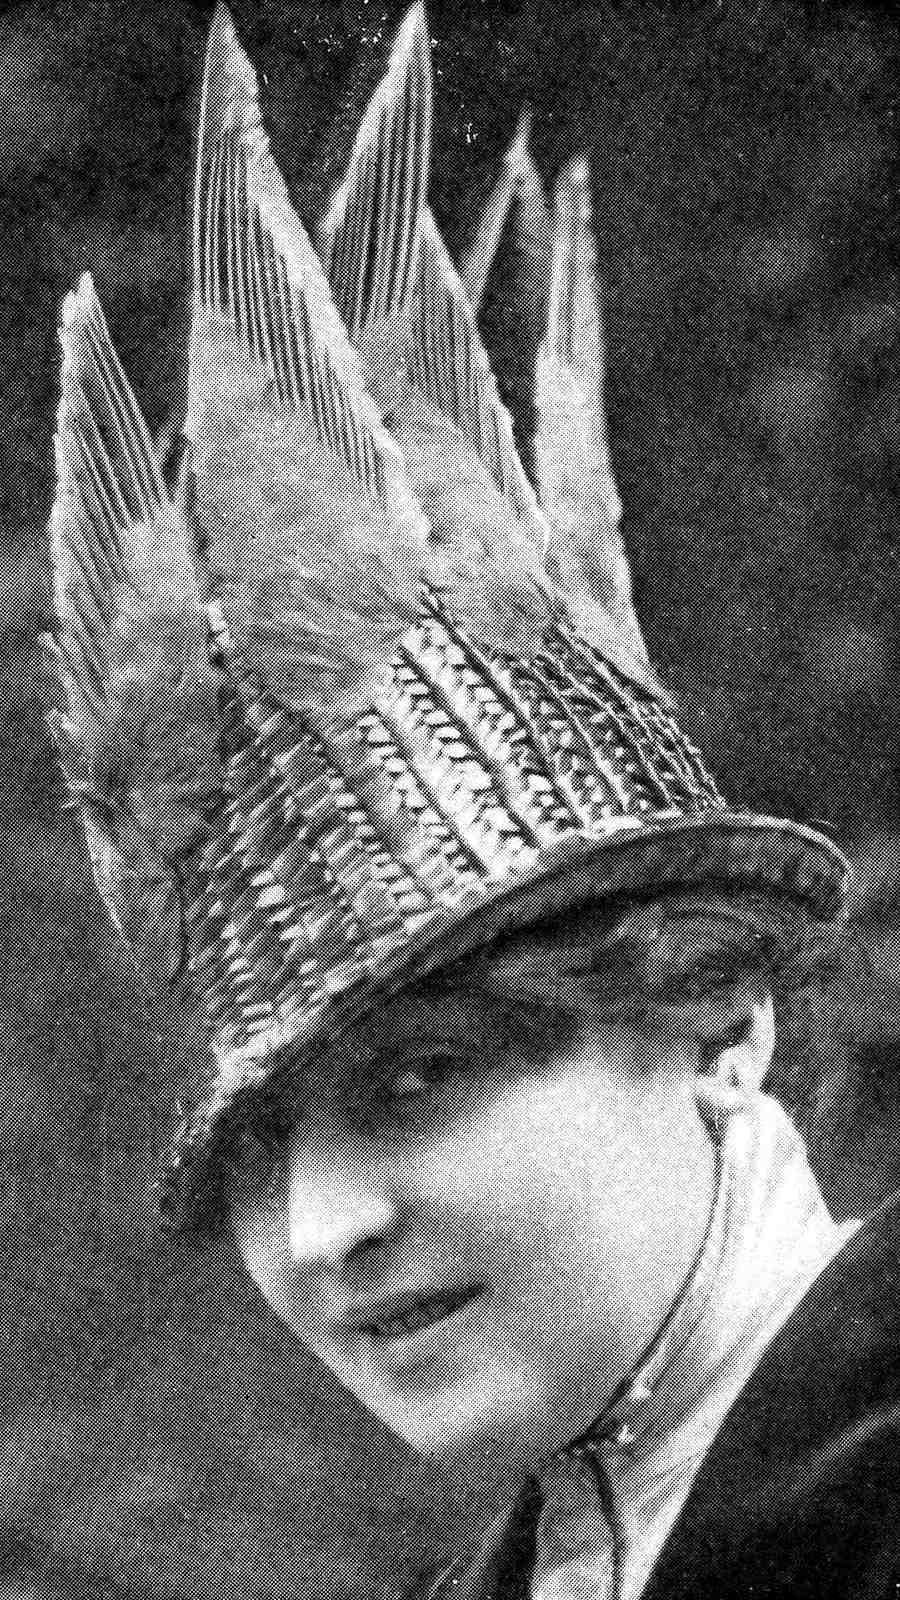 a high fashion photograph in 1915 France, a woman's hat with bird feathers